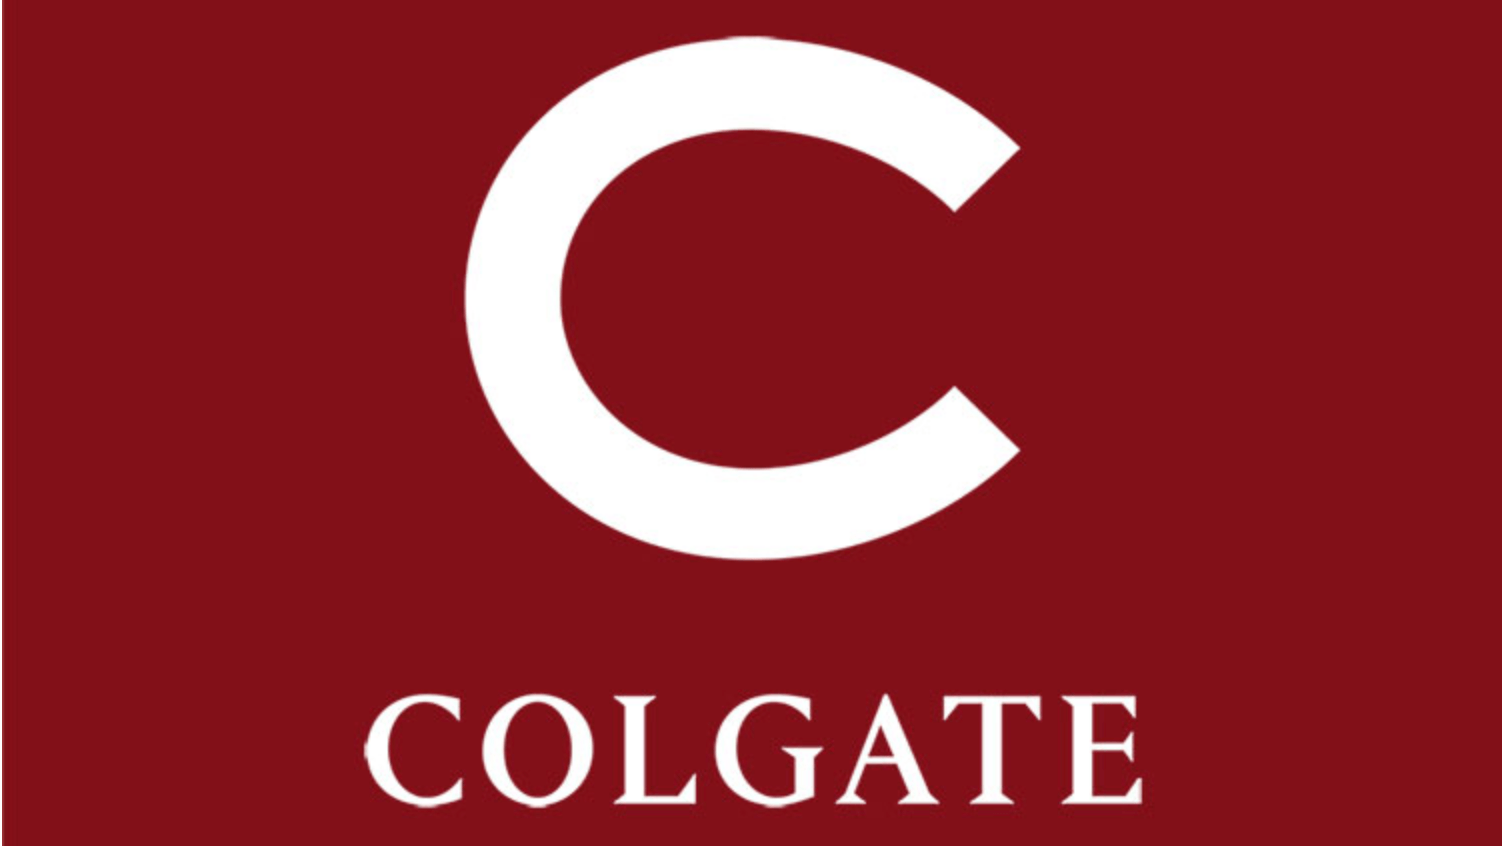 White Colgate 'C' on maroon background with 'COLGATE' underneath